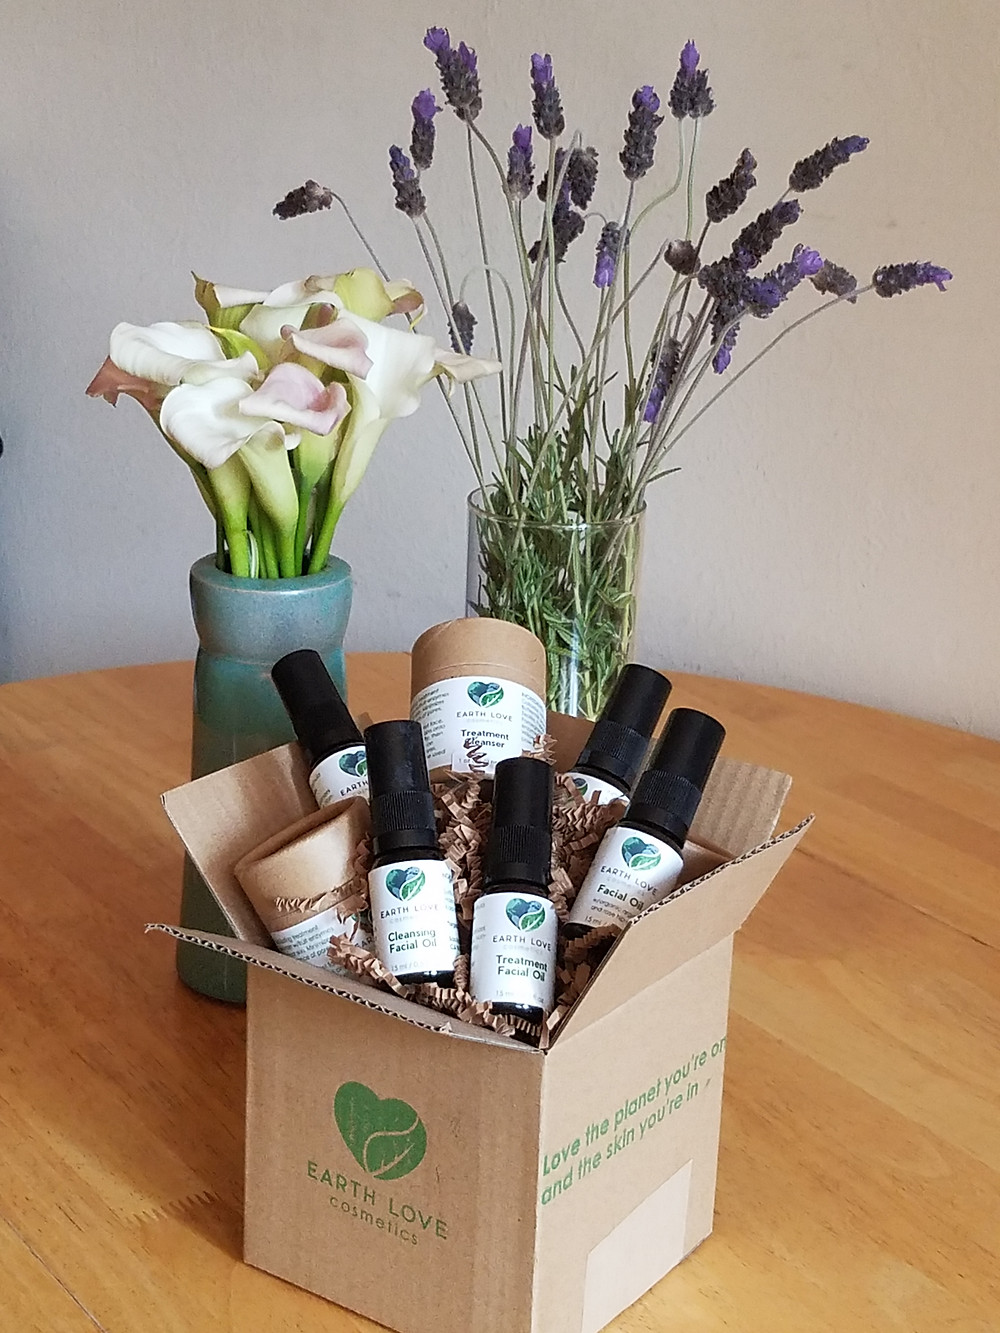 Photo of skincare products in box with floral displays